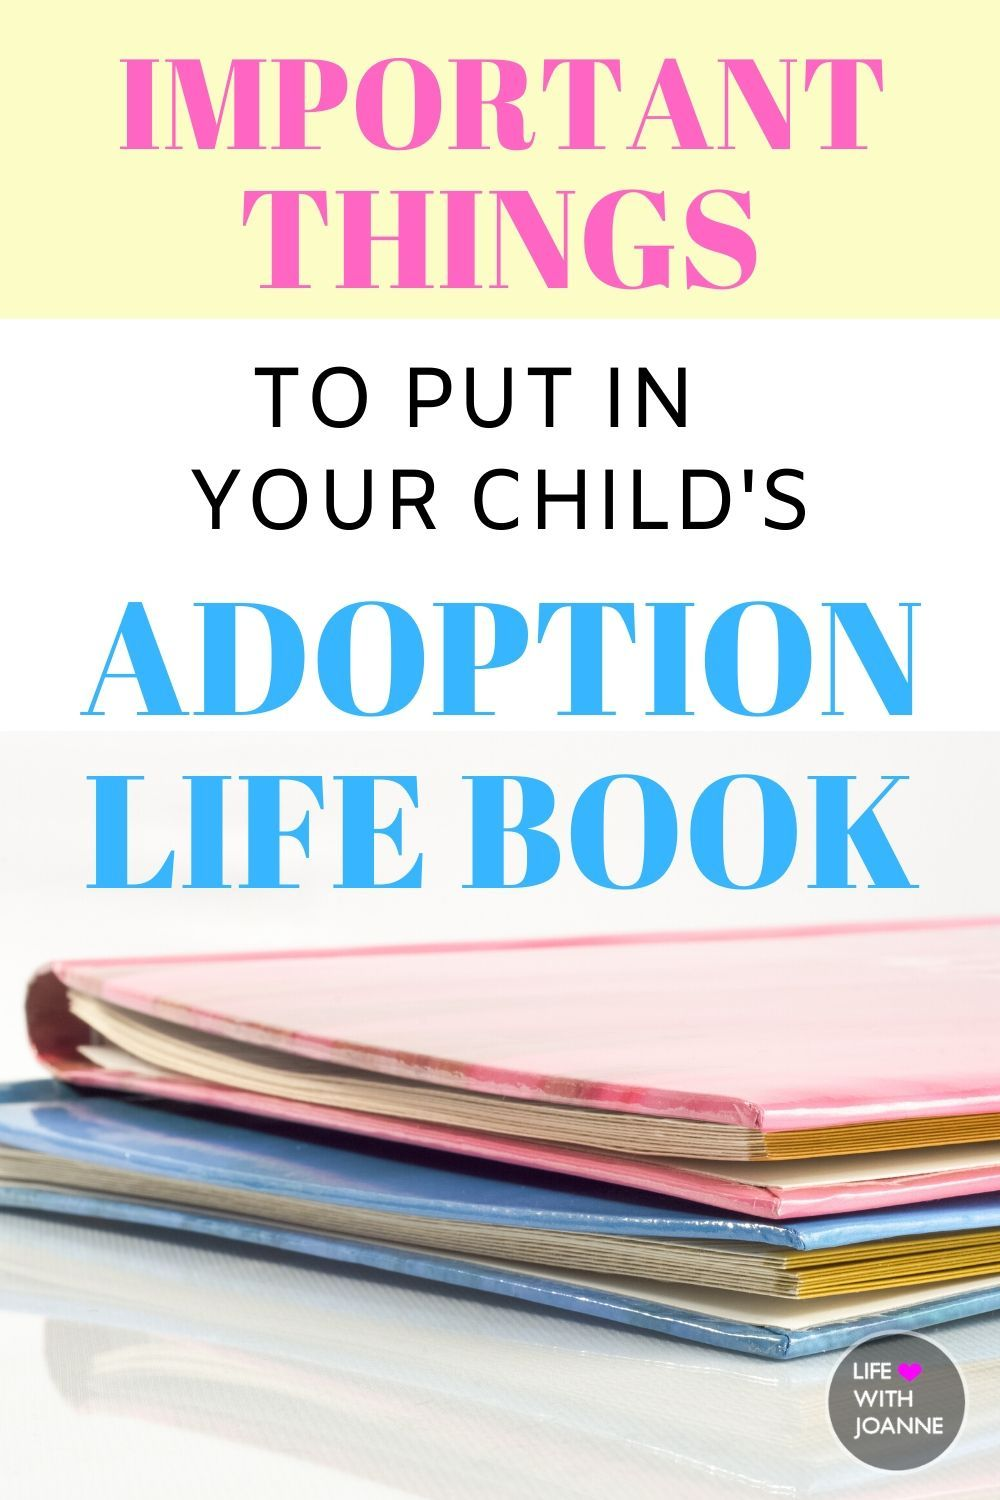 Adoption life book ideas and important things to include | adoption life book pages | life books for adoption  via @joannegreco